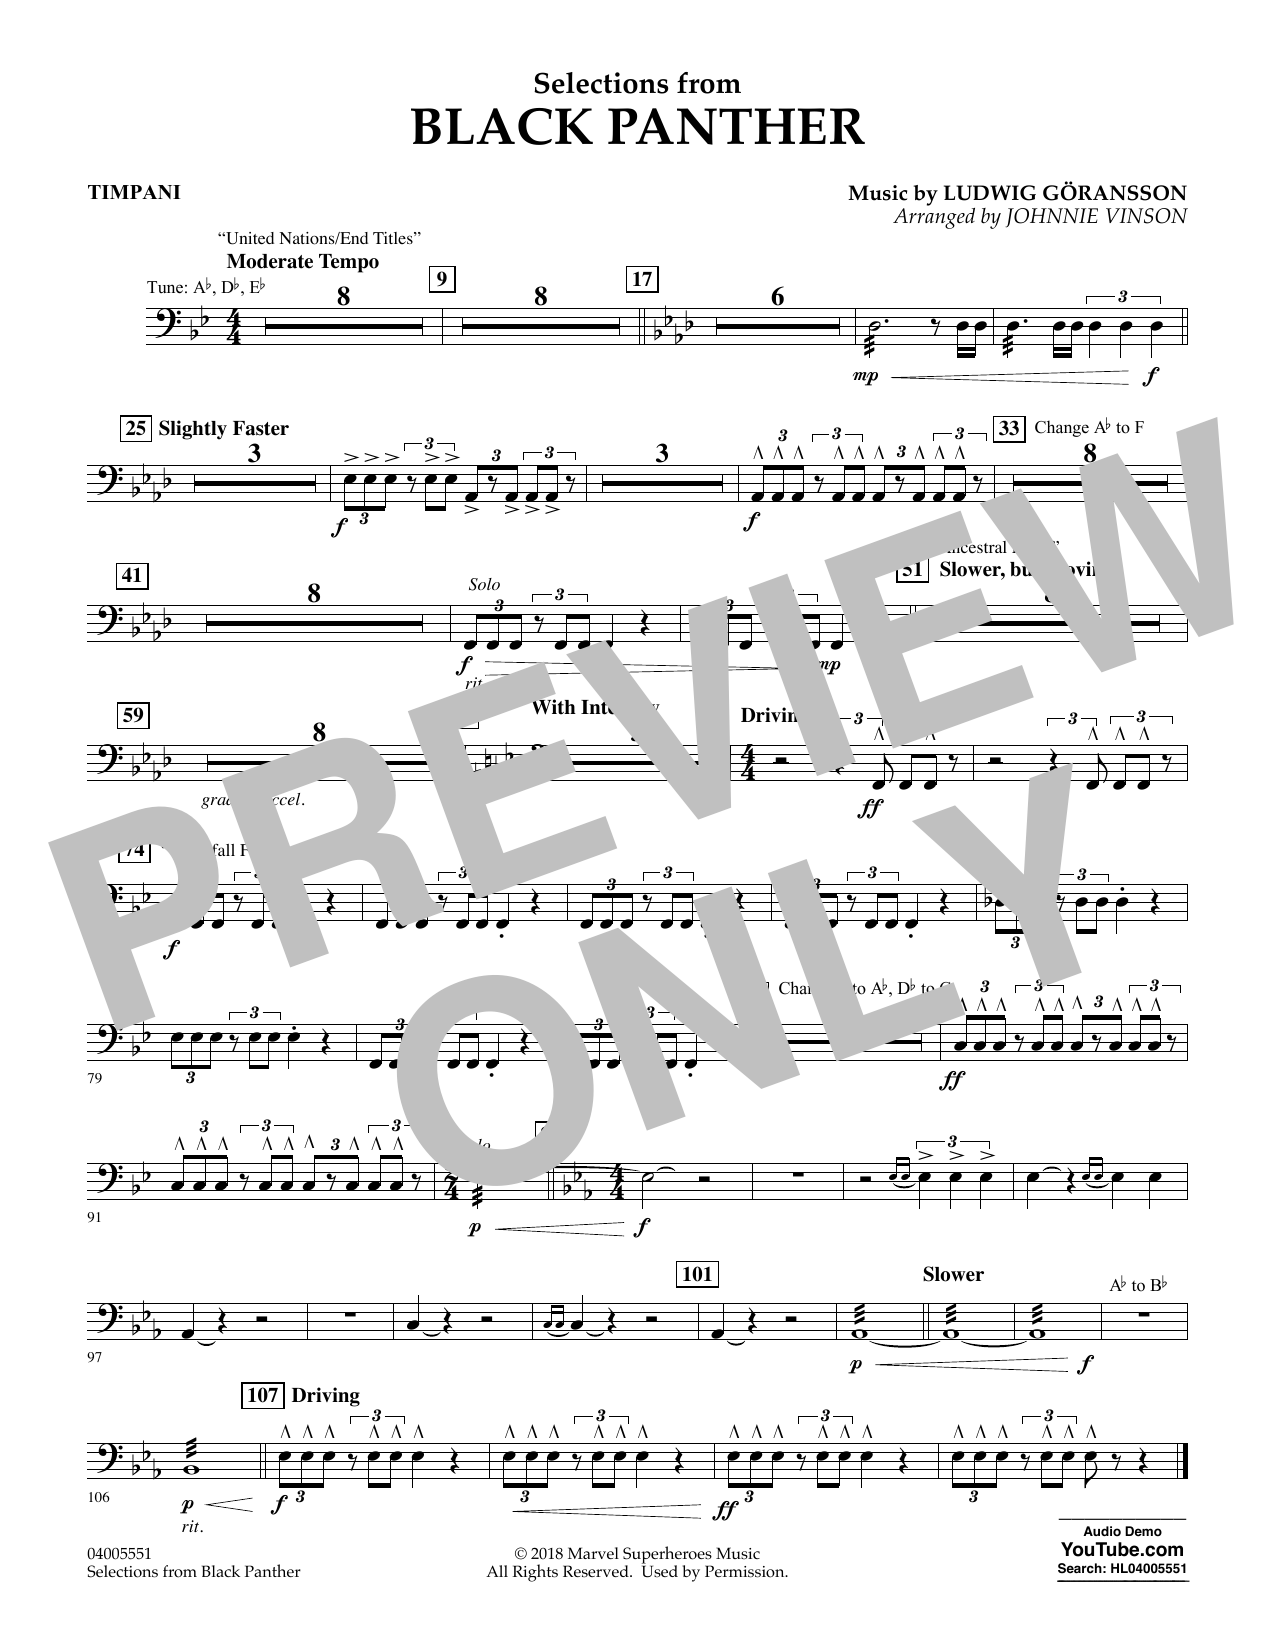 Selections from Black Panther - Timpani (Flex-Band)